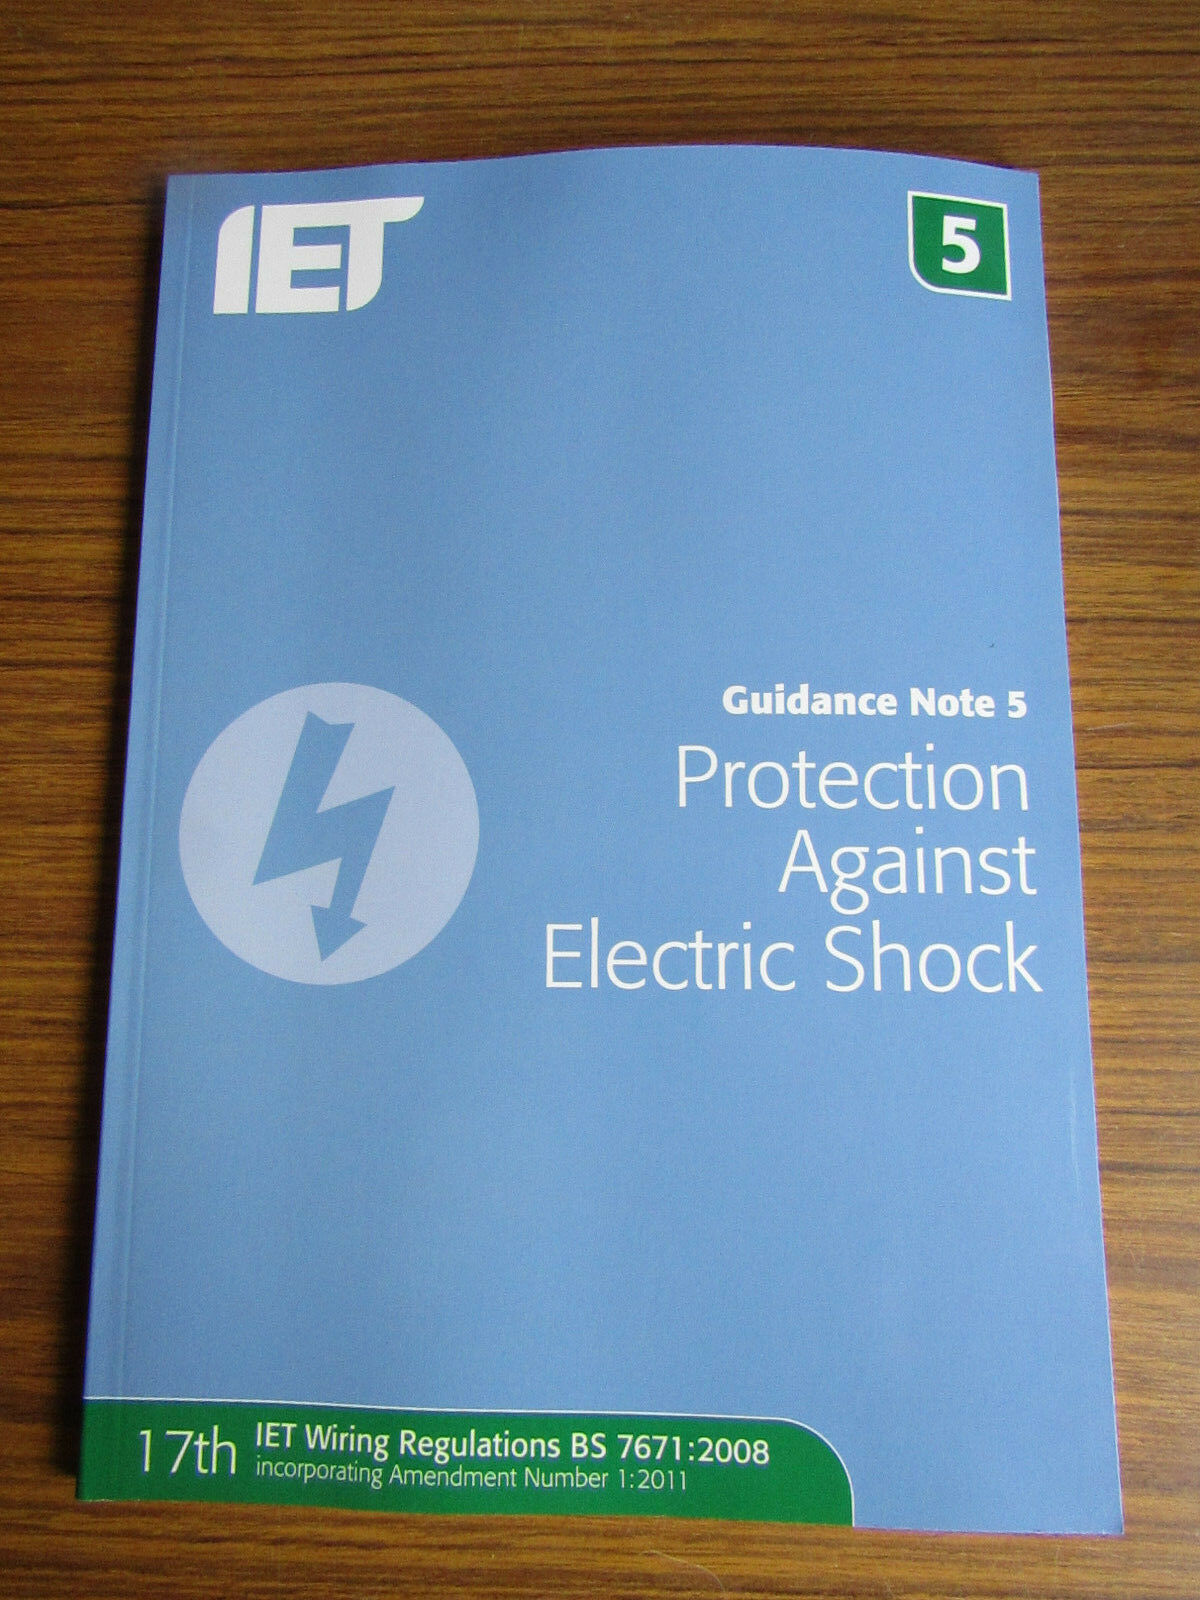 Guidance Note 5 Protection Against Electric Shock By Institution Of Iet Wiring Regs Books Stock Photo